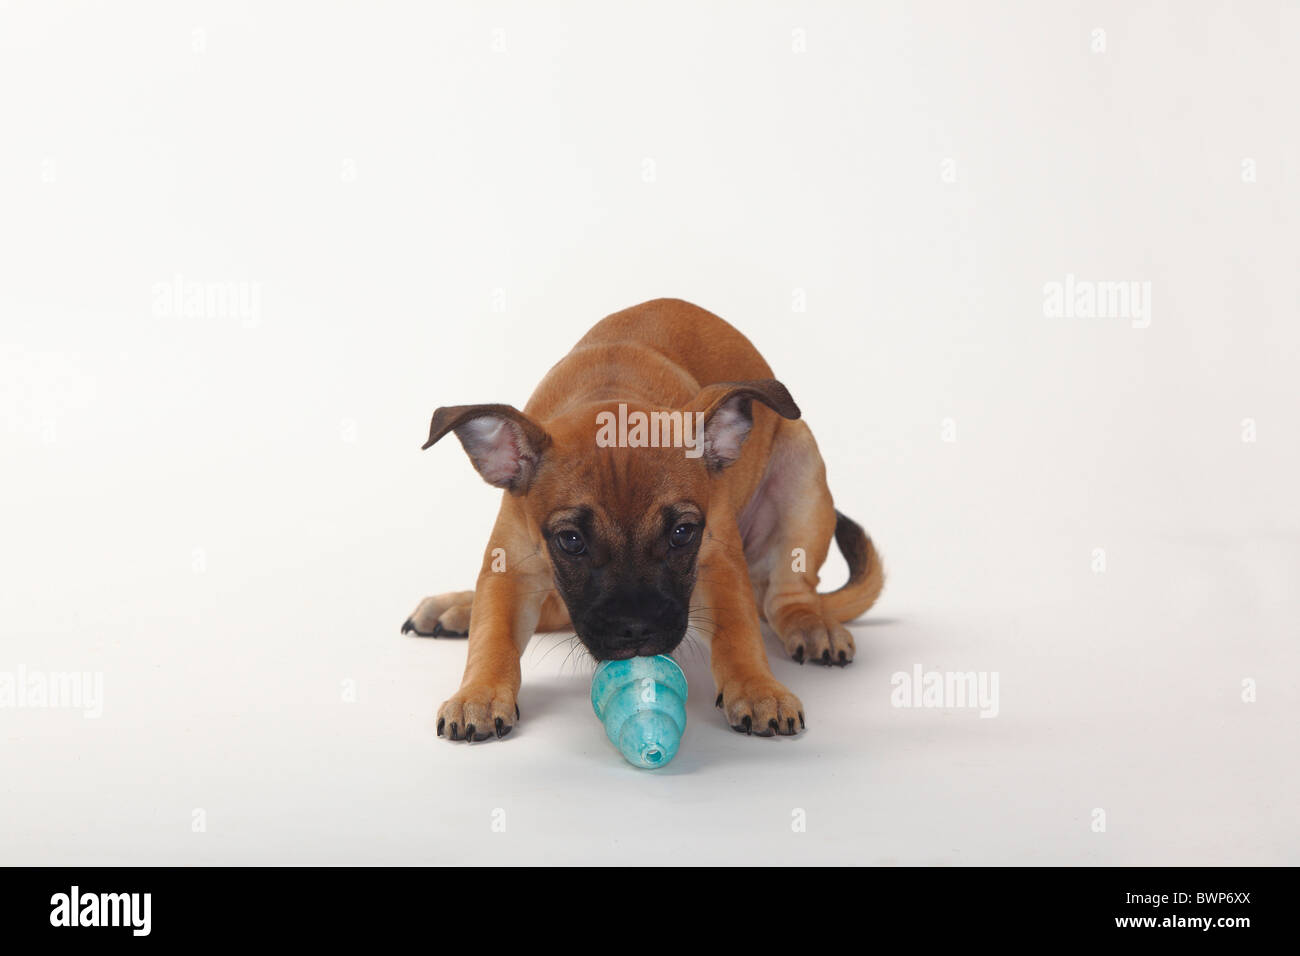 Mixed Breed Dog, puppy, 12 weeks / Pug crossbred, rubber chewing toy - Stock Image